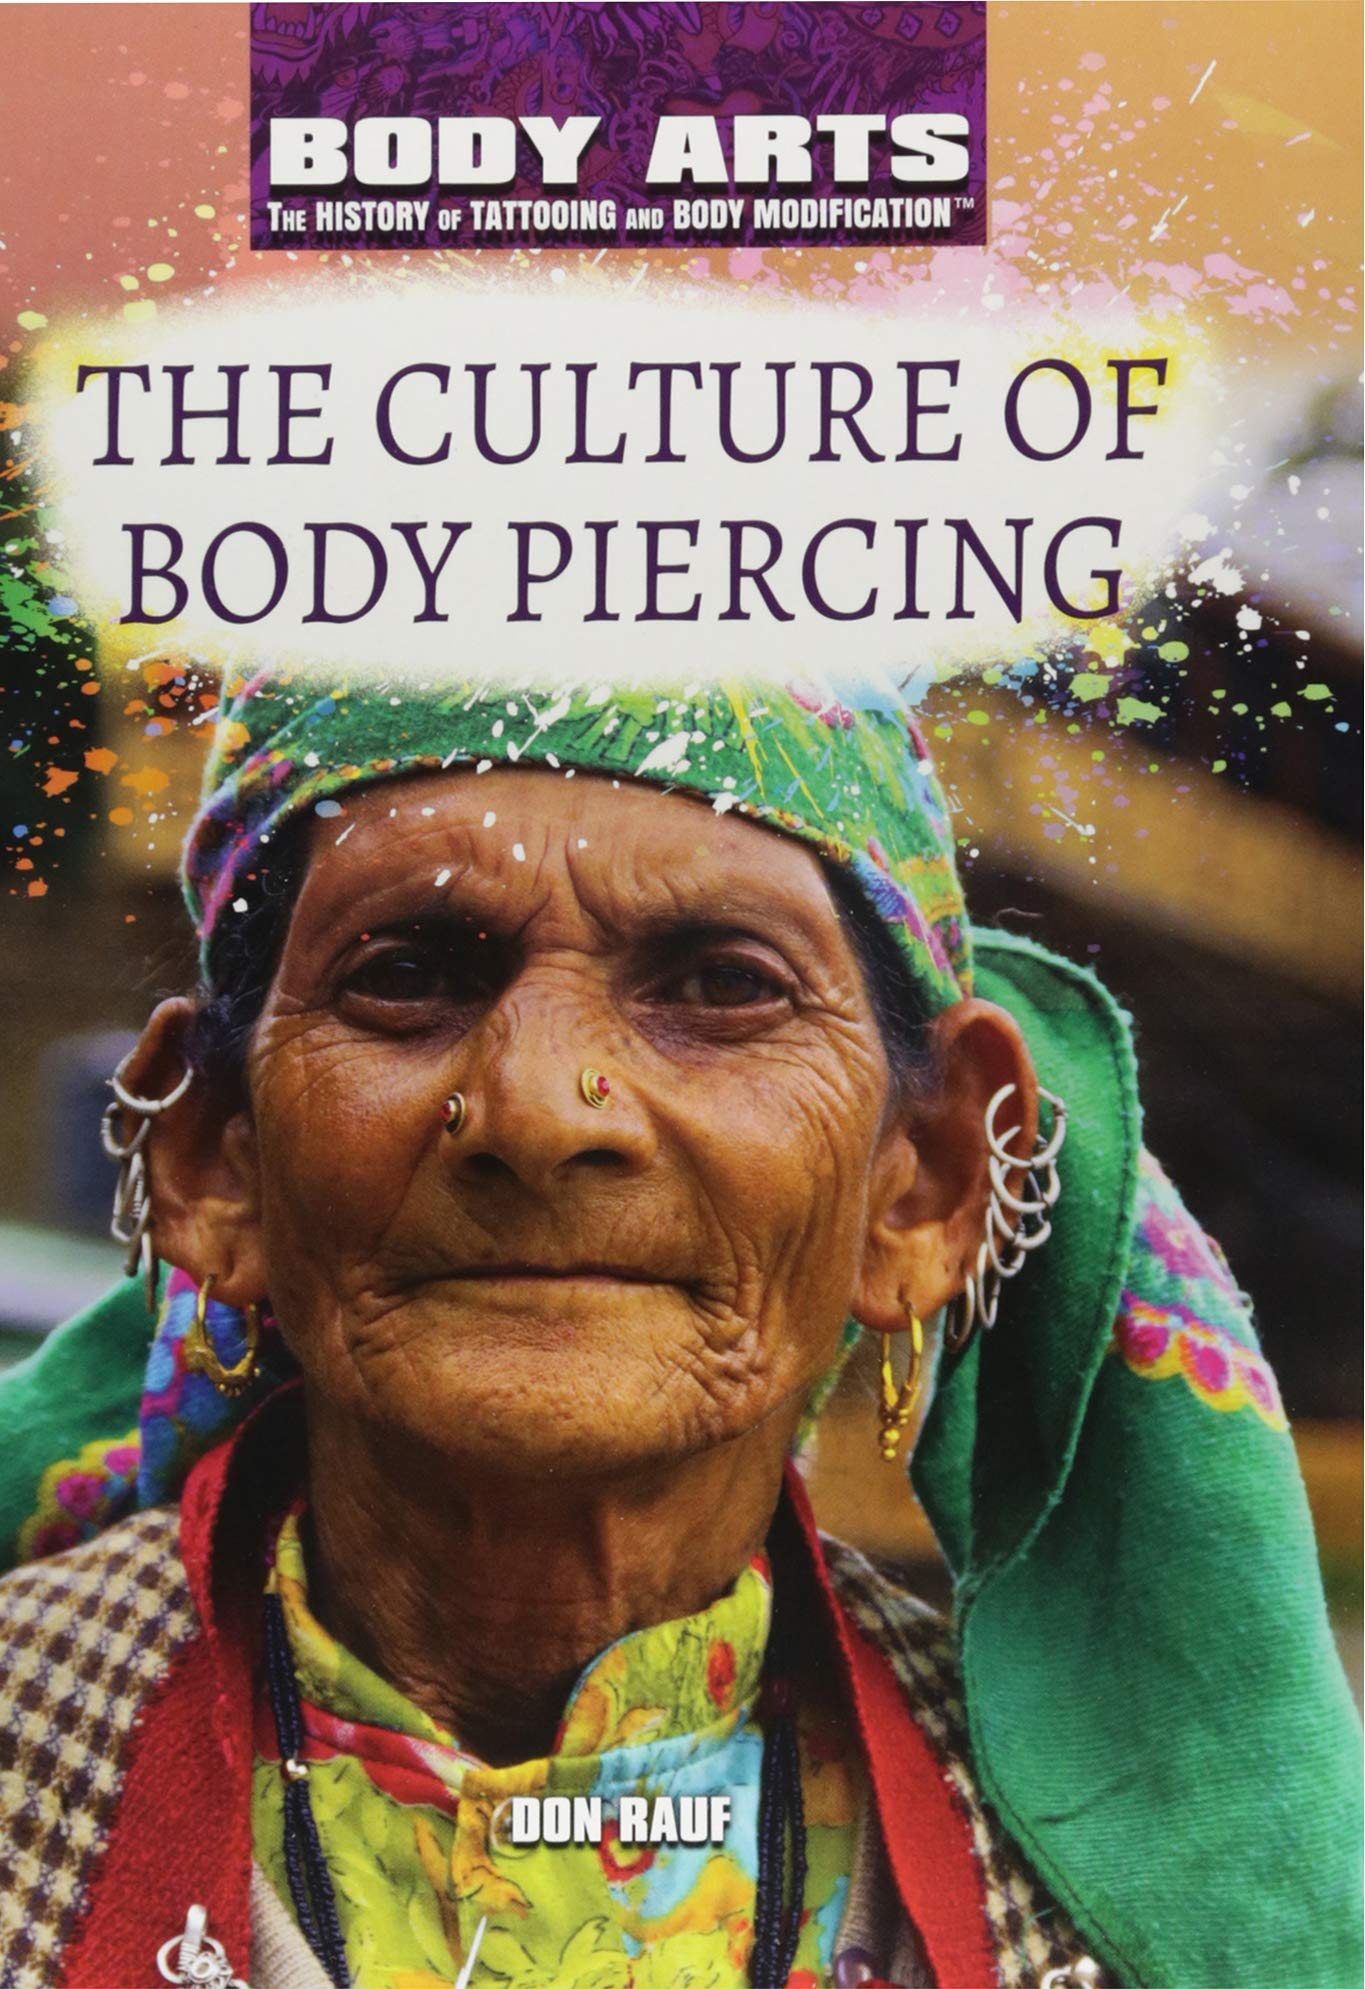 Amazoncom The Culture Of Body Piercing Body Arts The History Of